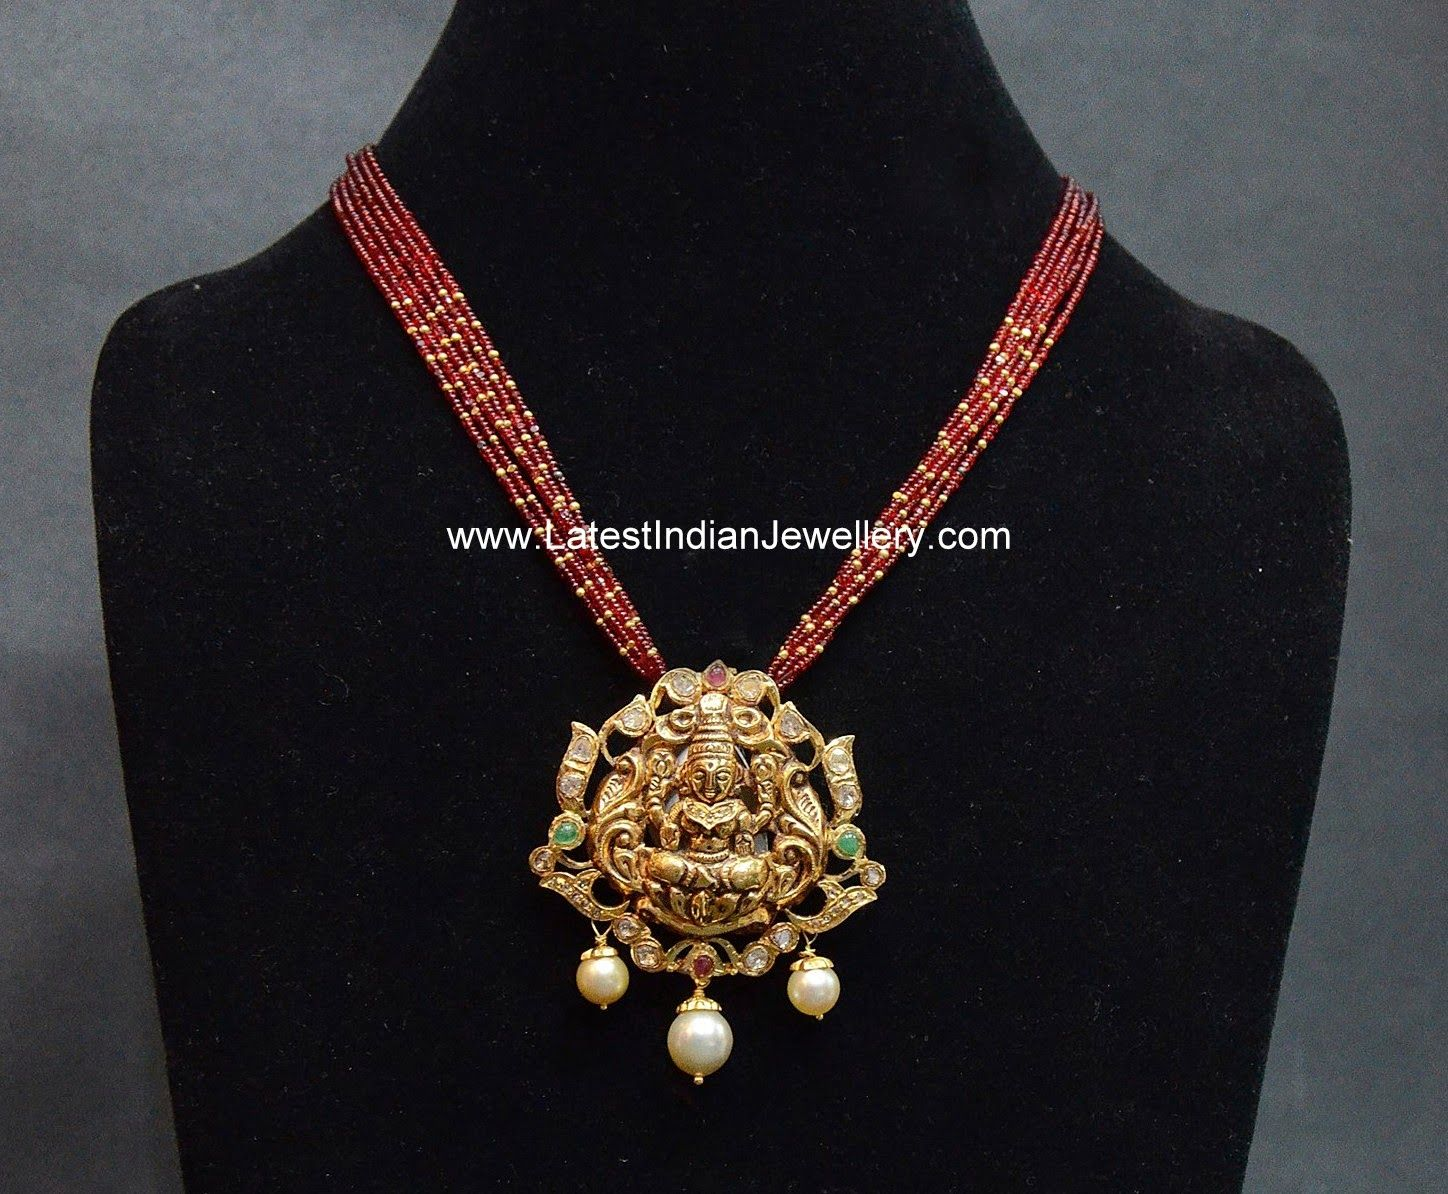 22 carat gold floral designer pendant with multiple beads chain and - Ruby Beads Chain Lakshmi Pendant